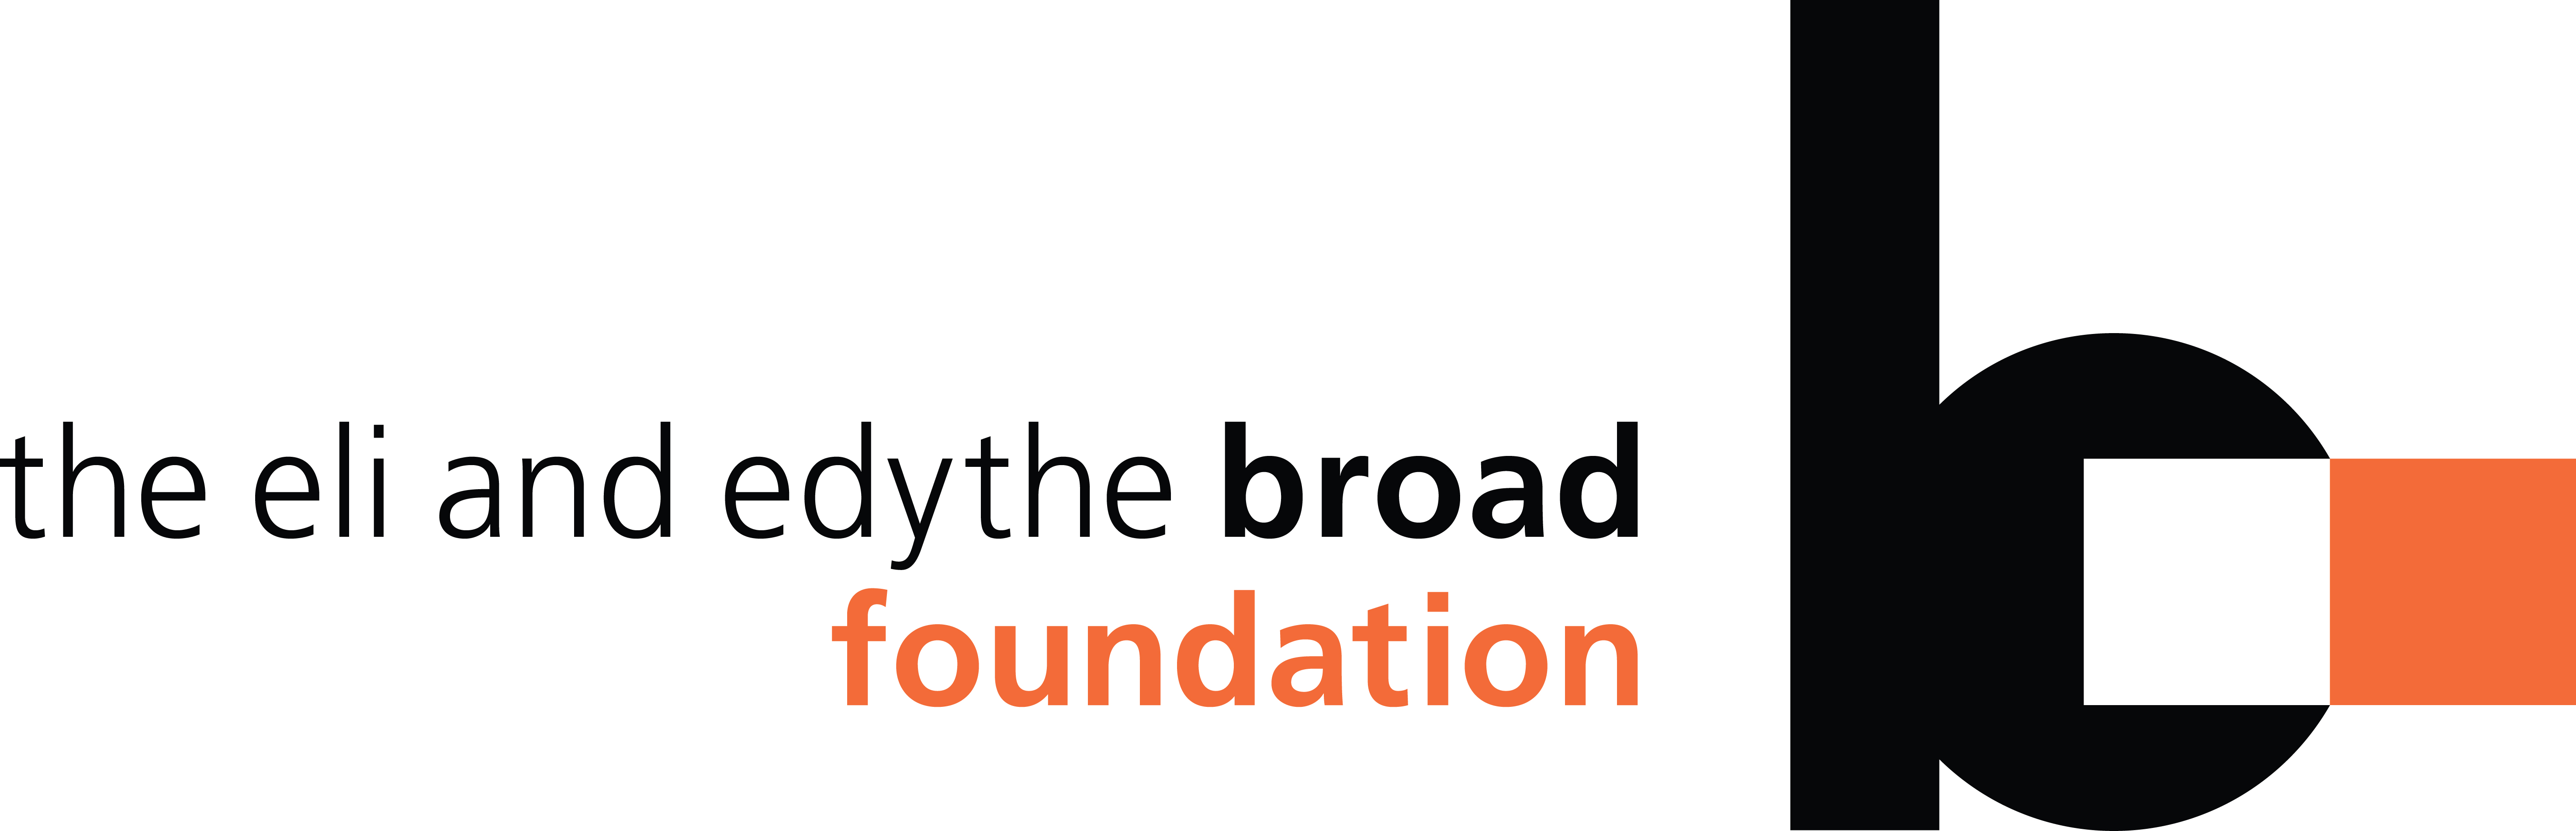 The Eli and Edythe Broad Foundation